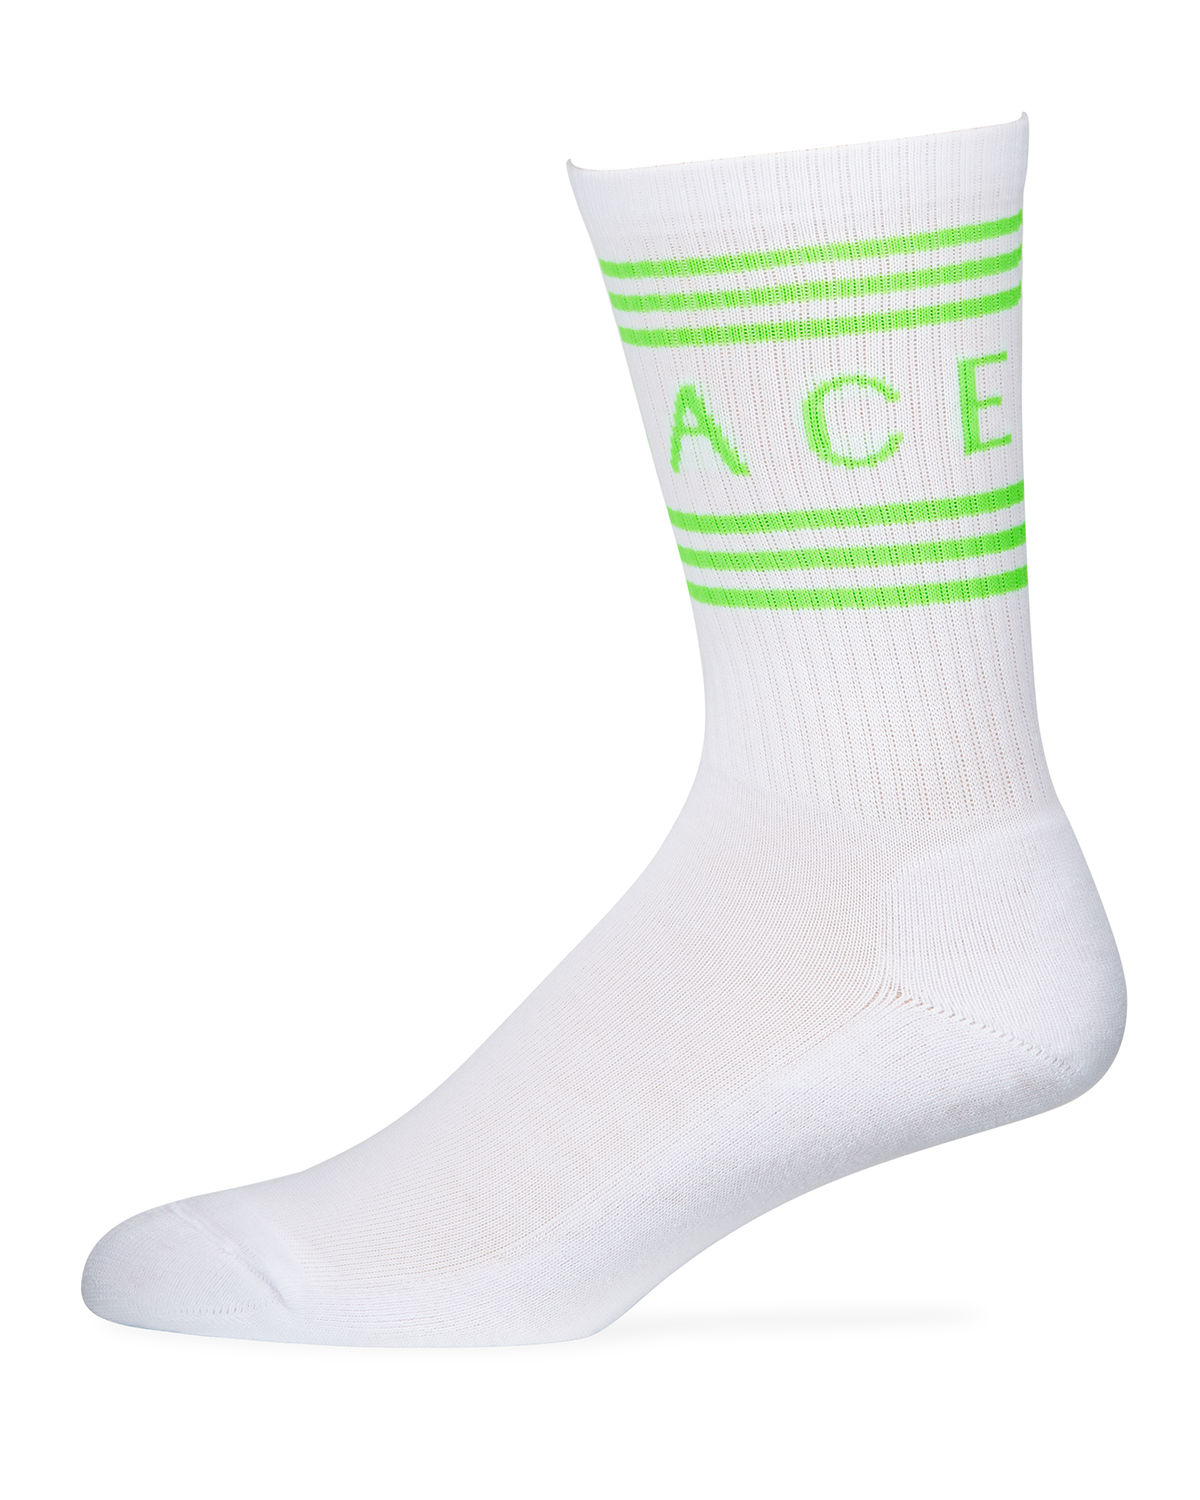 Versace Men's Athletic Band Socks In White/Green